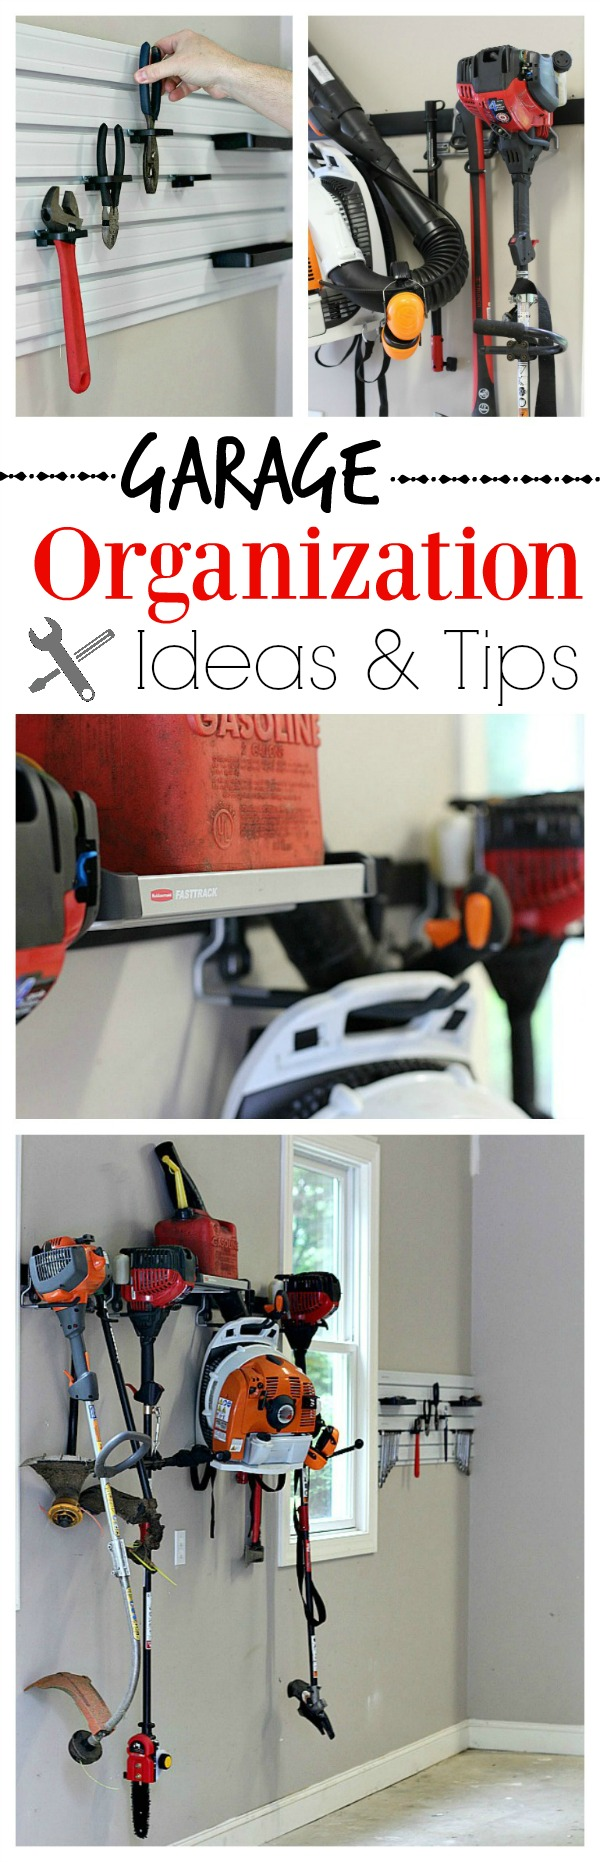 #GarageCleanUp #ad Garage Organizaiton Ideas and Tips